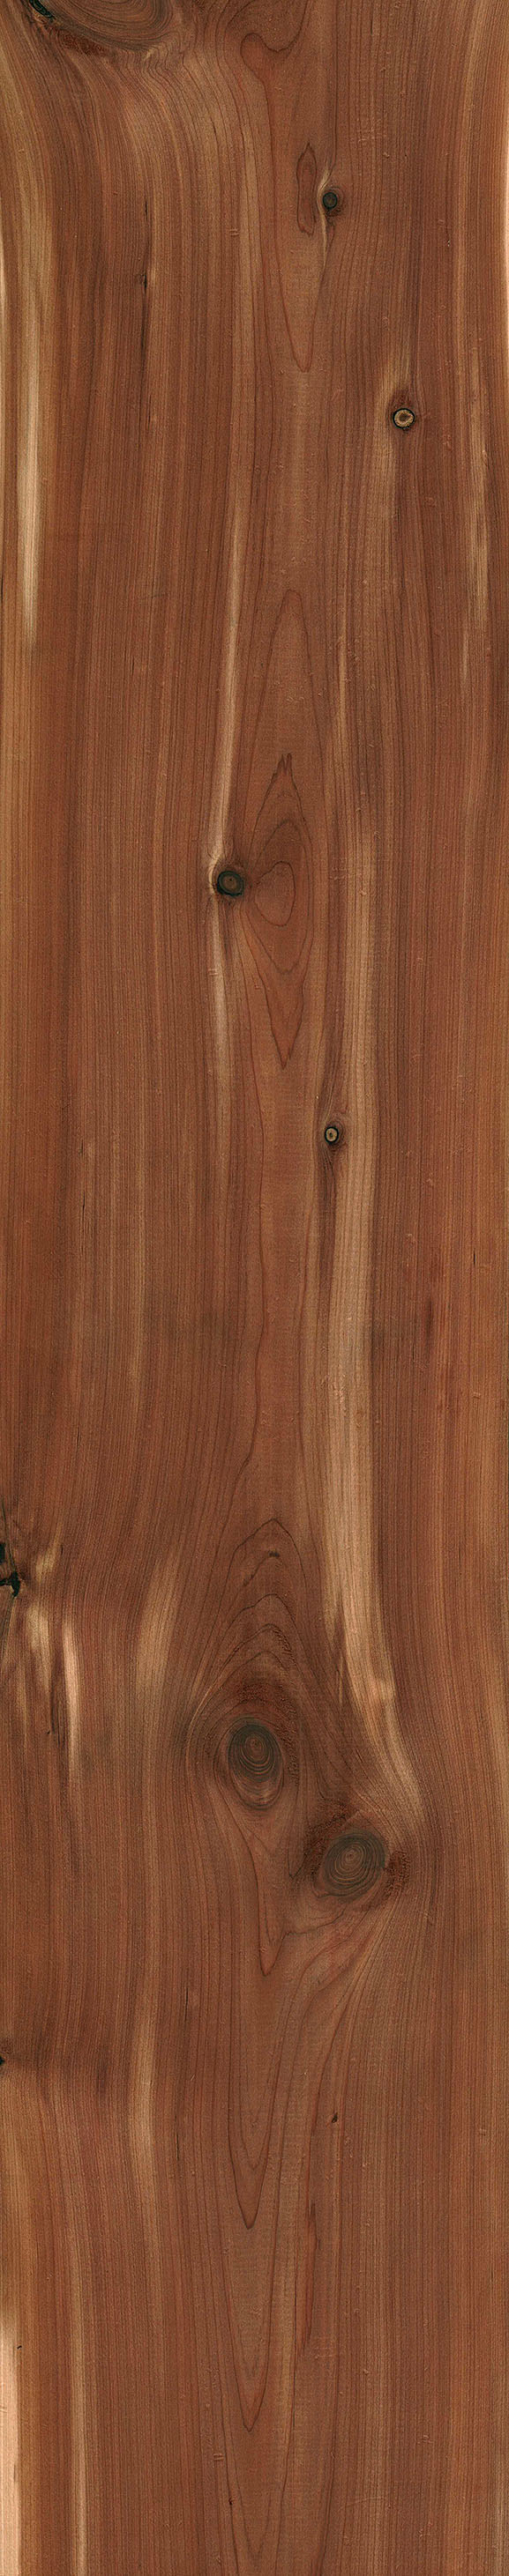 Rustic Red Cedar Just In Time For Christmas